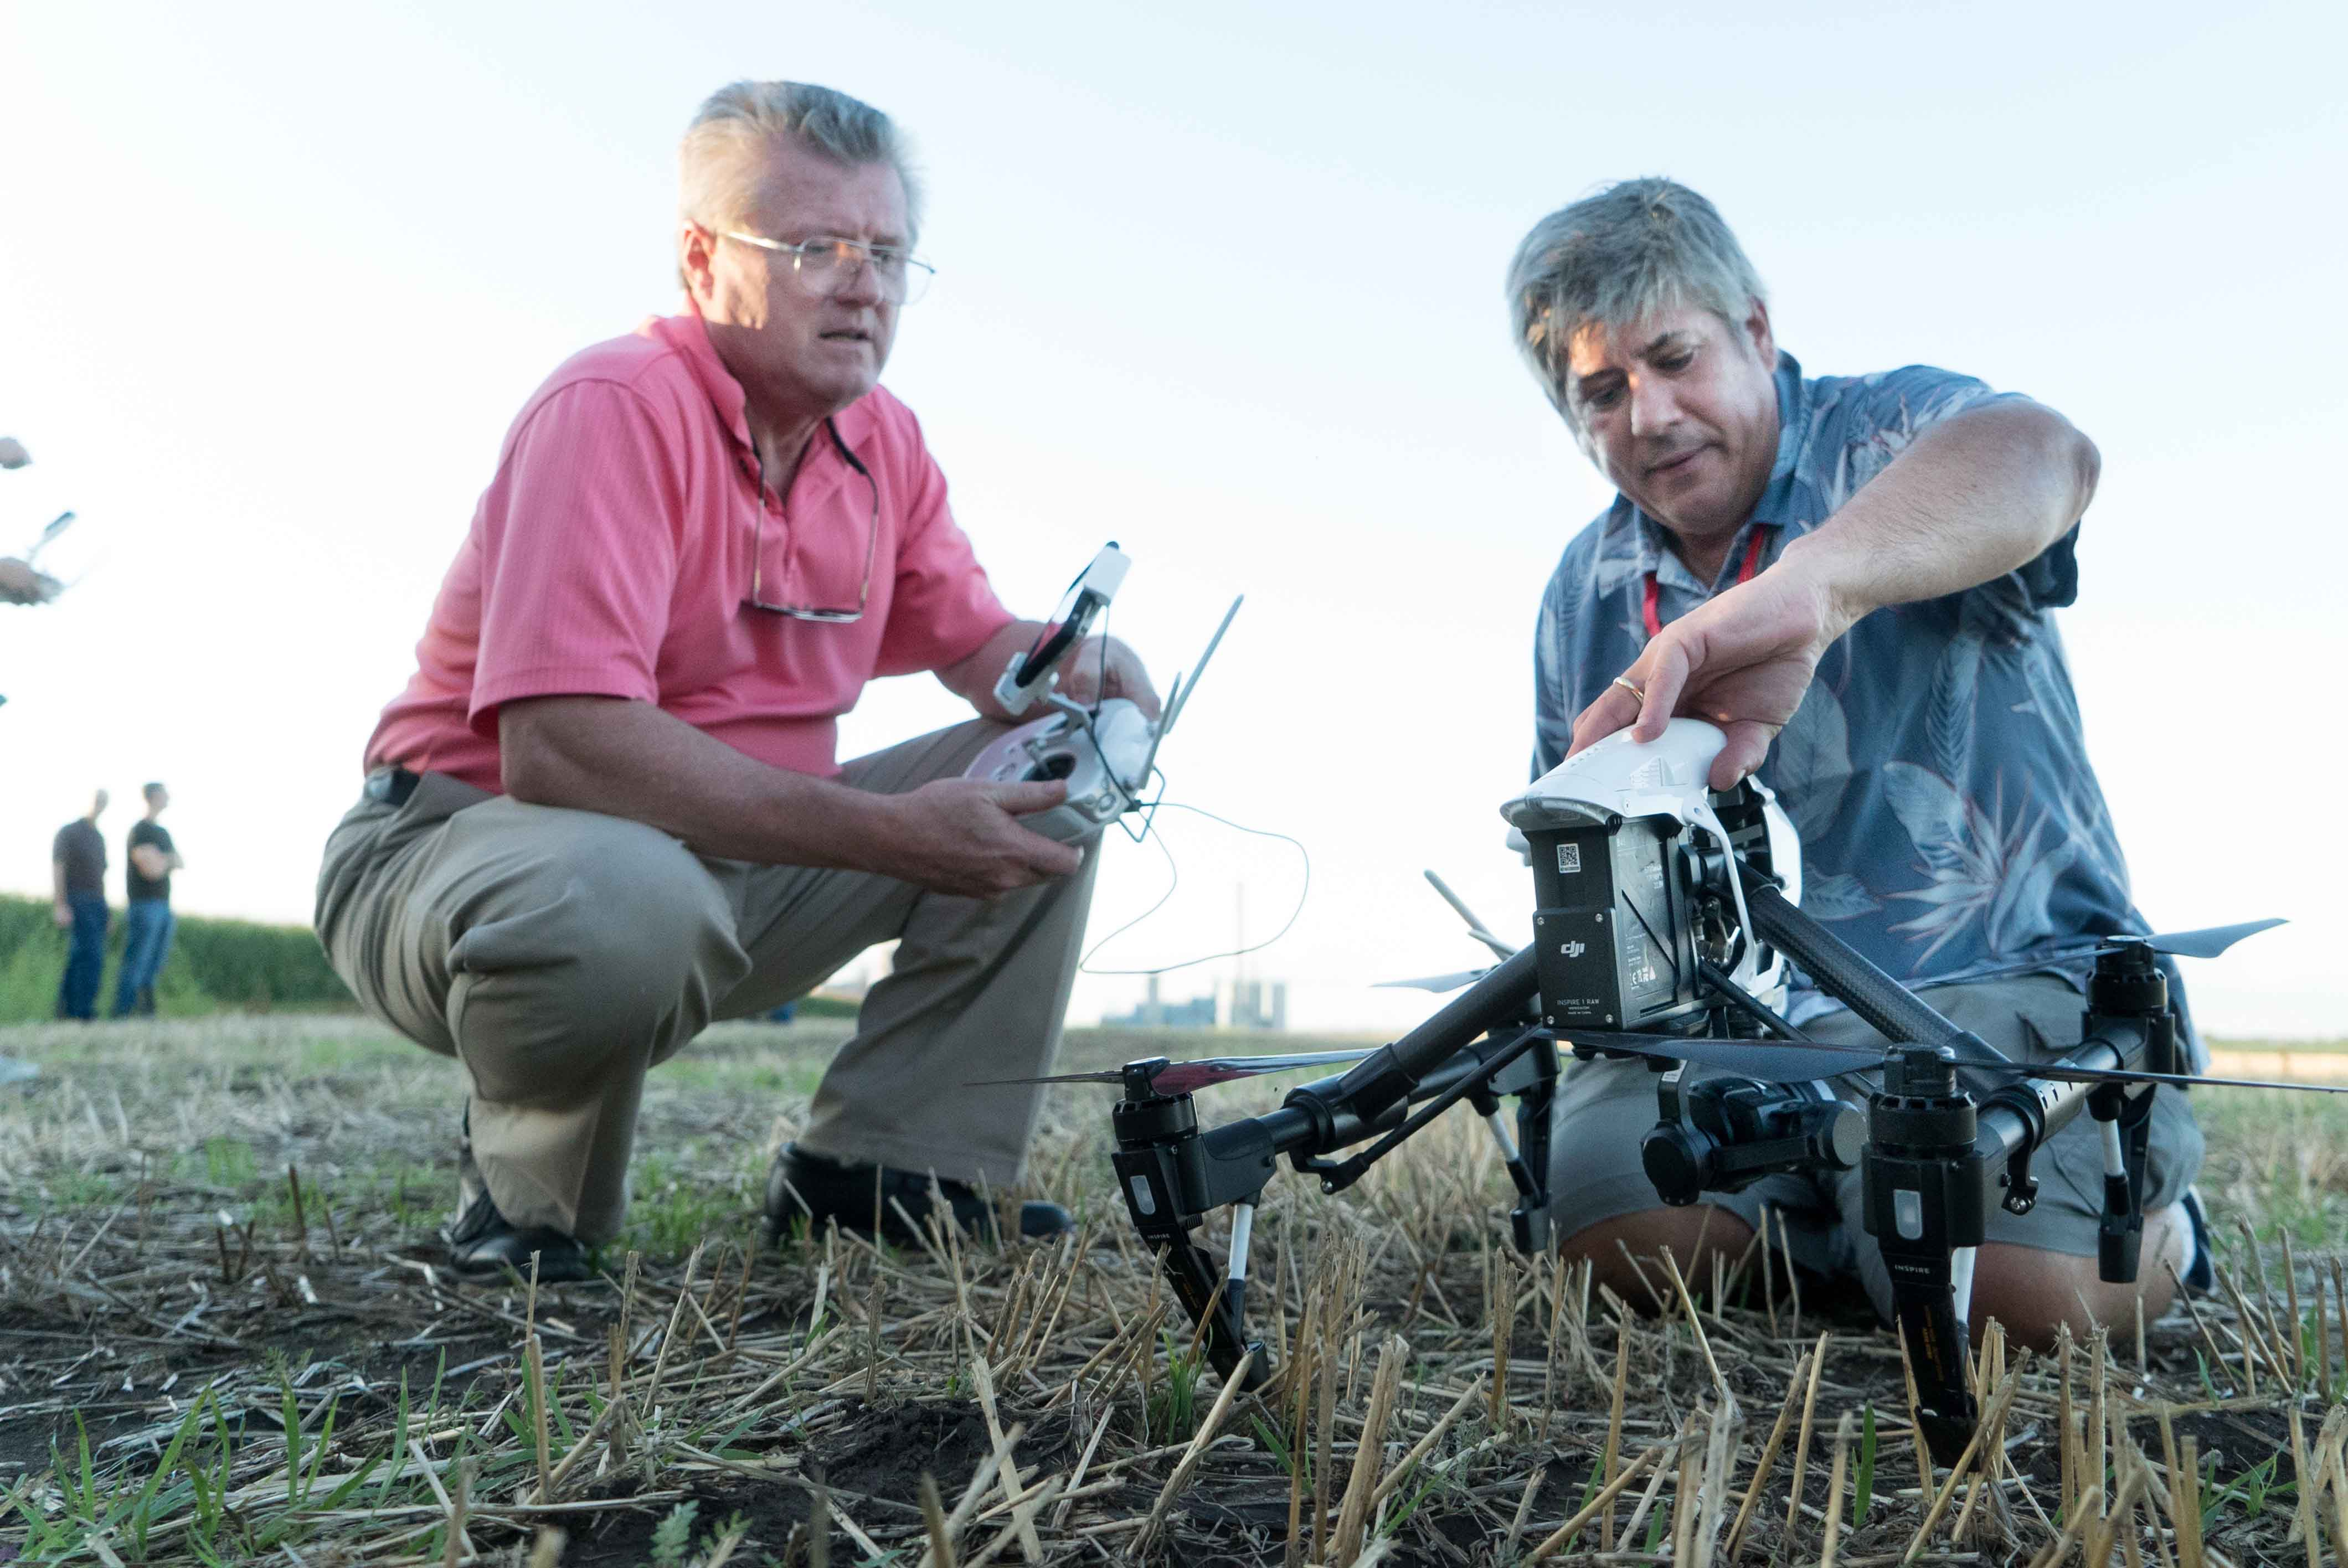 SCSU Journalism faculty member chosen for inaugural Drone Journalism Boot Camp